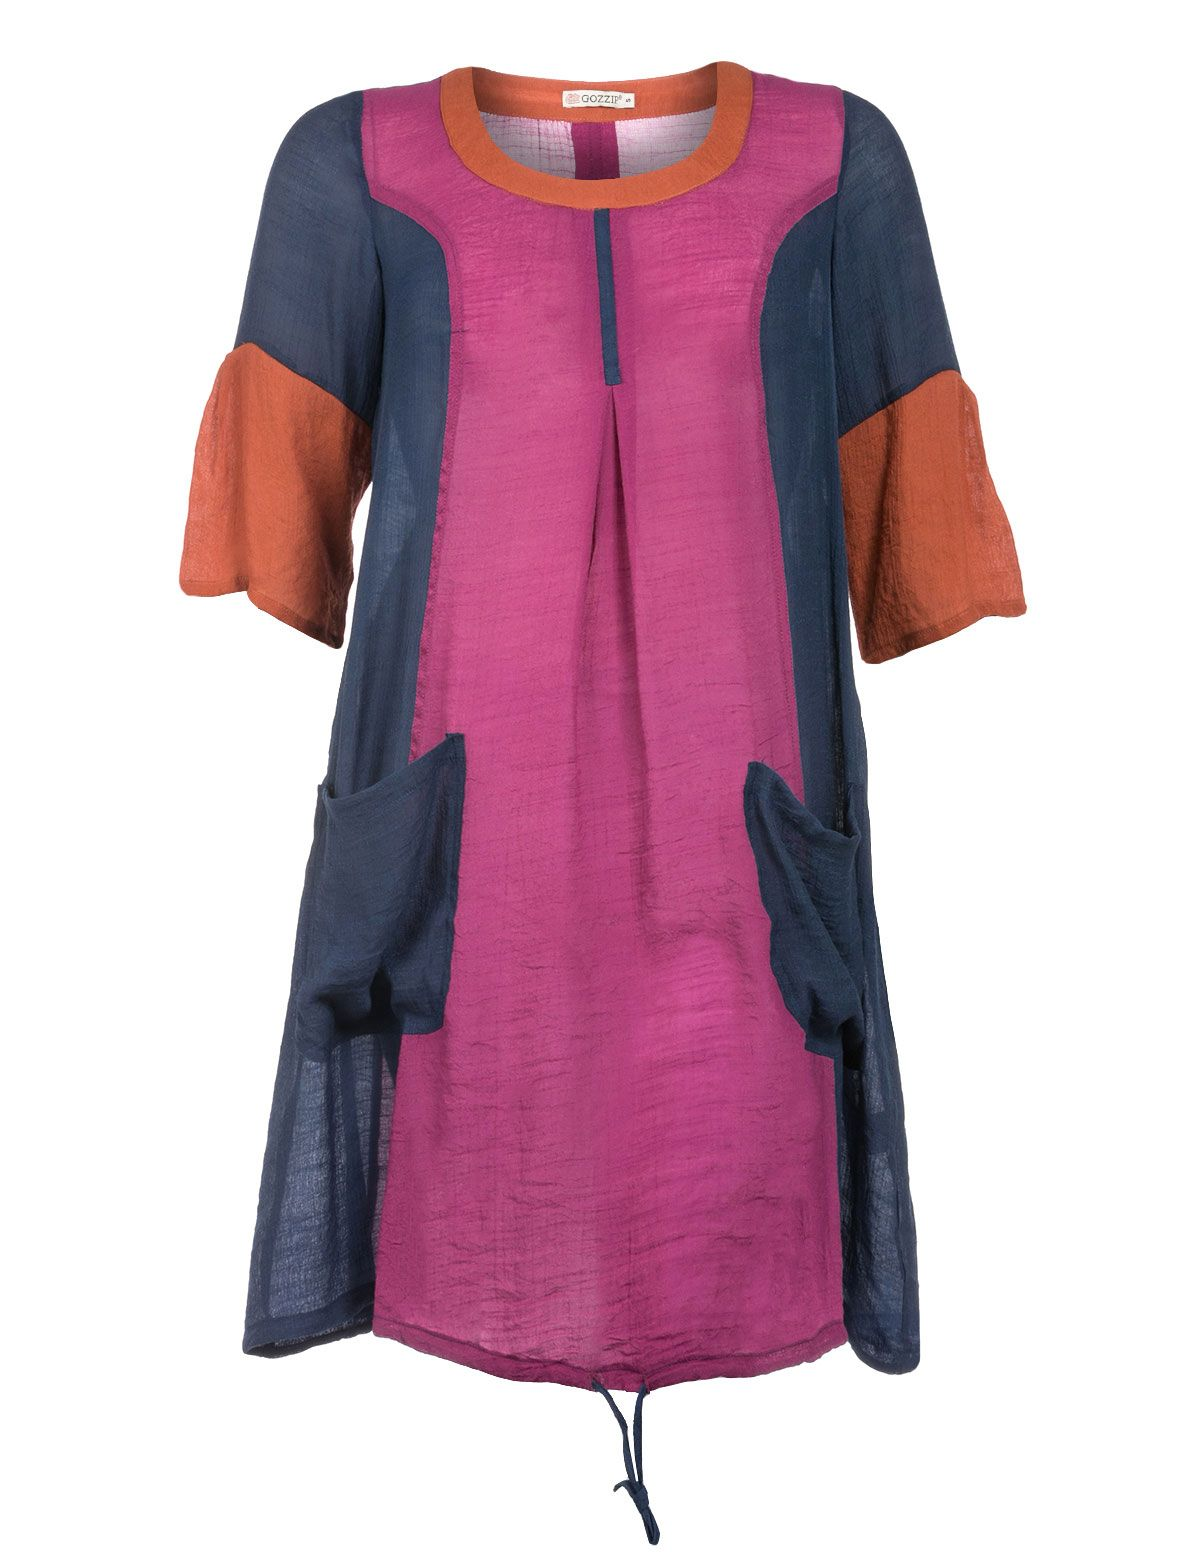 Navy pink and orange plus size dress - too casual ?